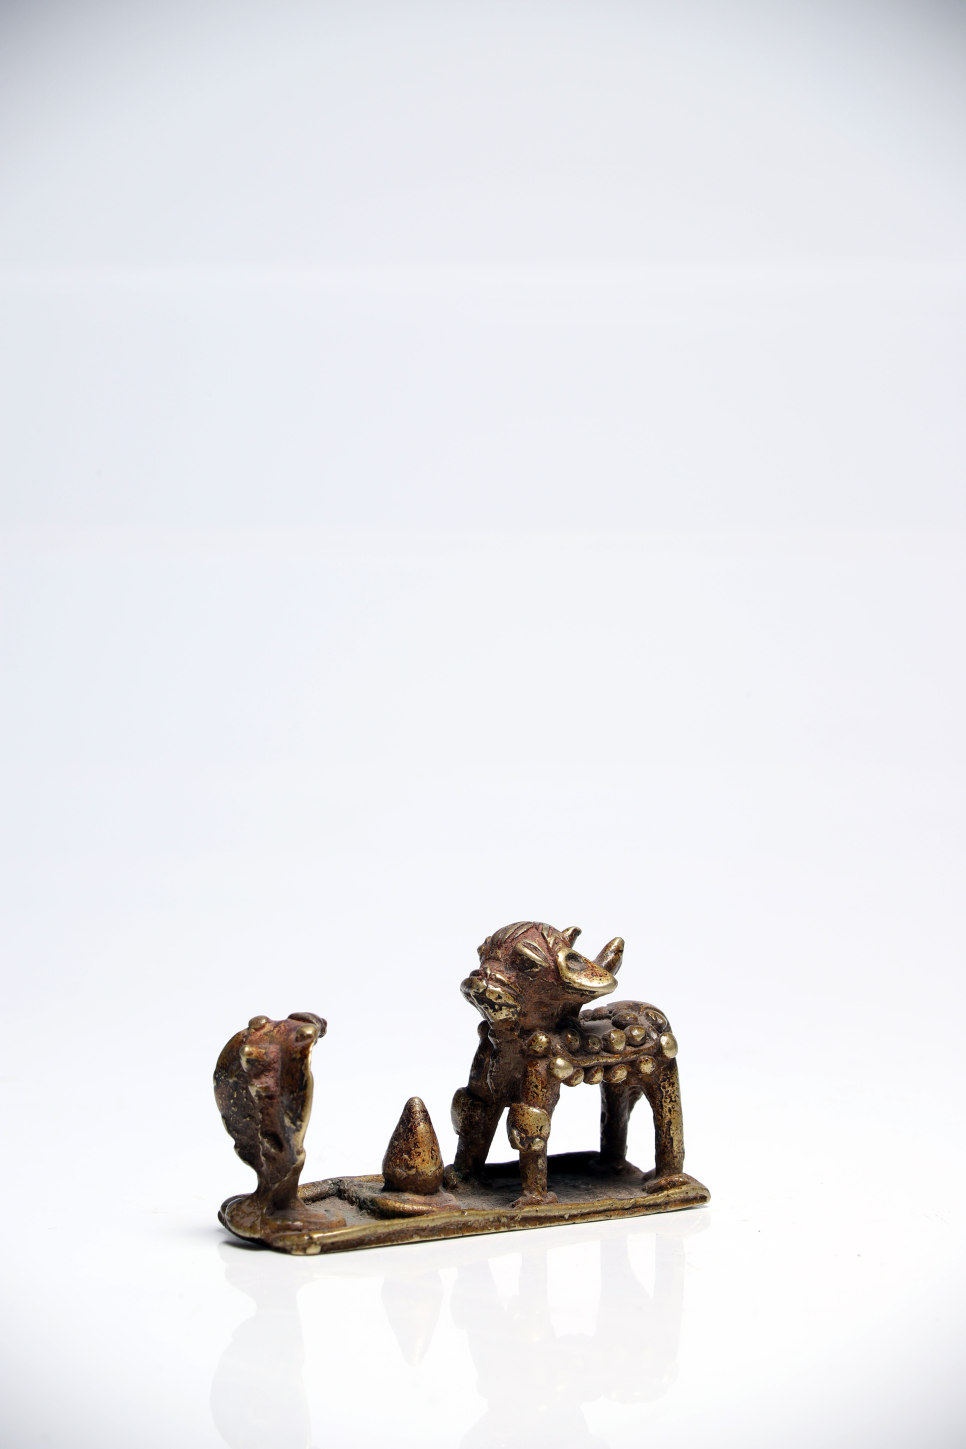 Lot 45 - House ShrineBronzeIndia18th ctH: 5 cmLittle house shrine probably depicting Nandi the white bull and